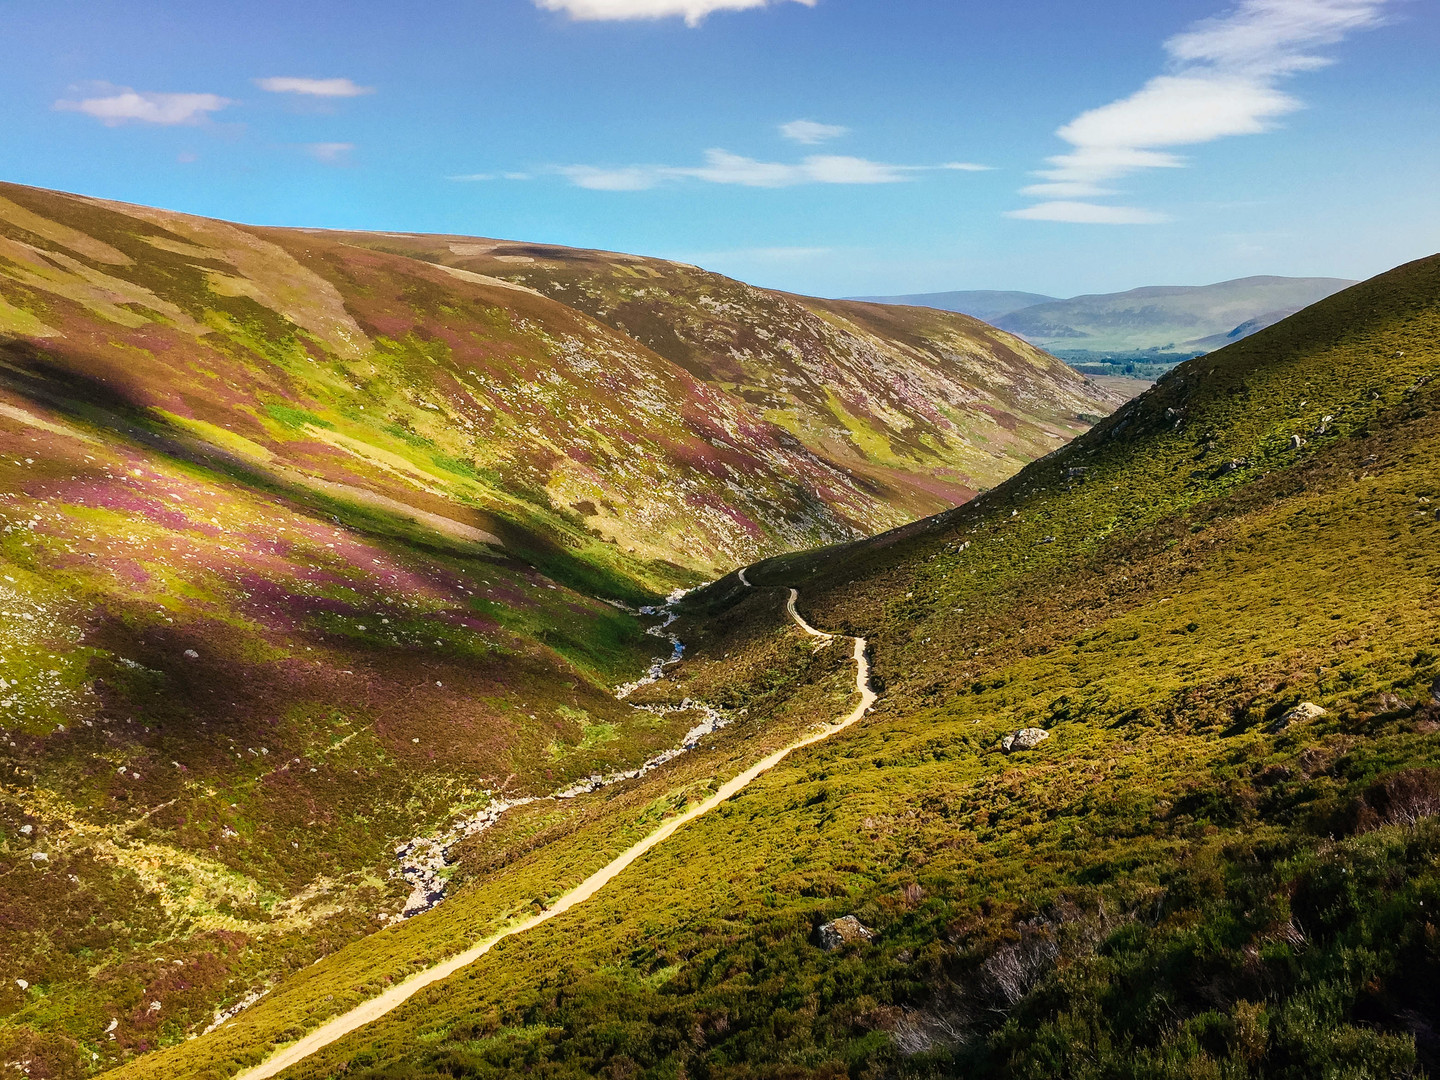 Descent into Glen Mark